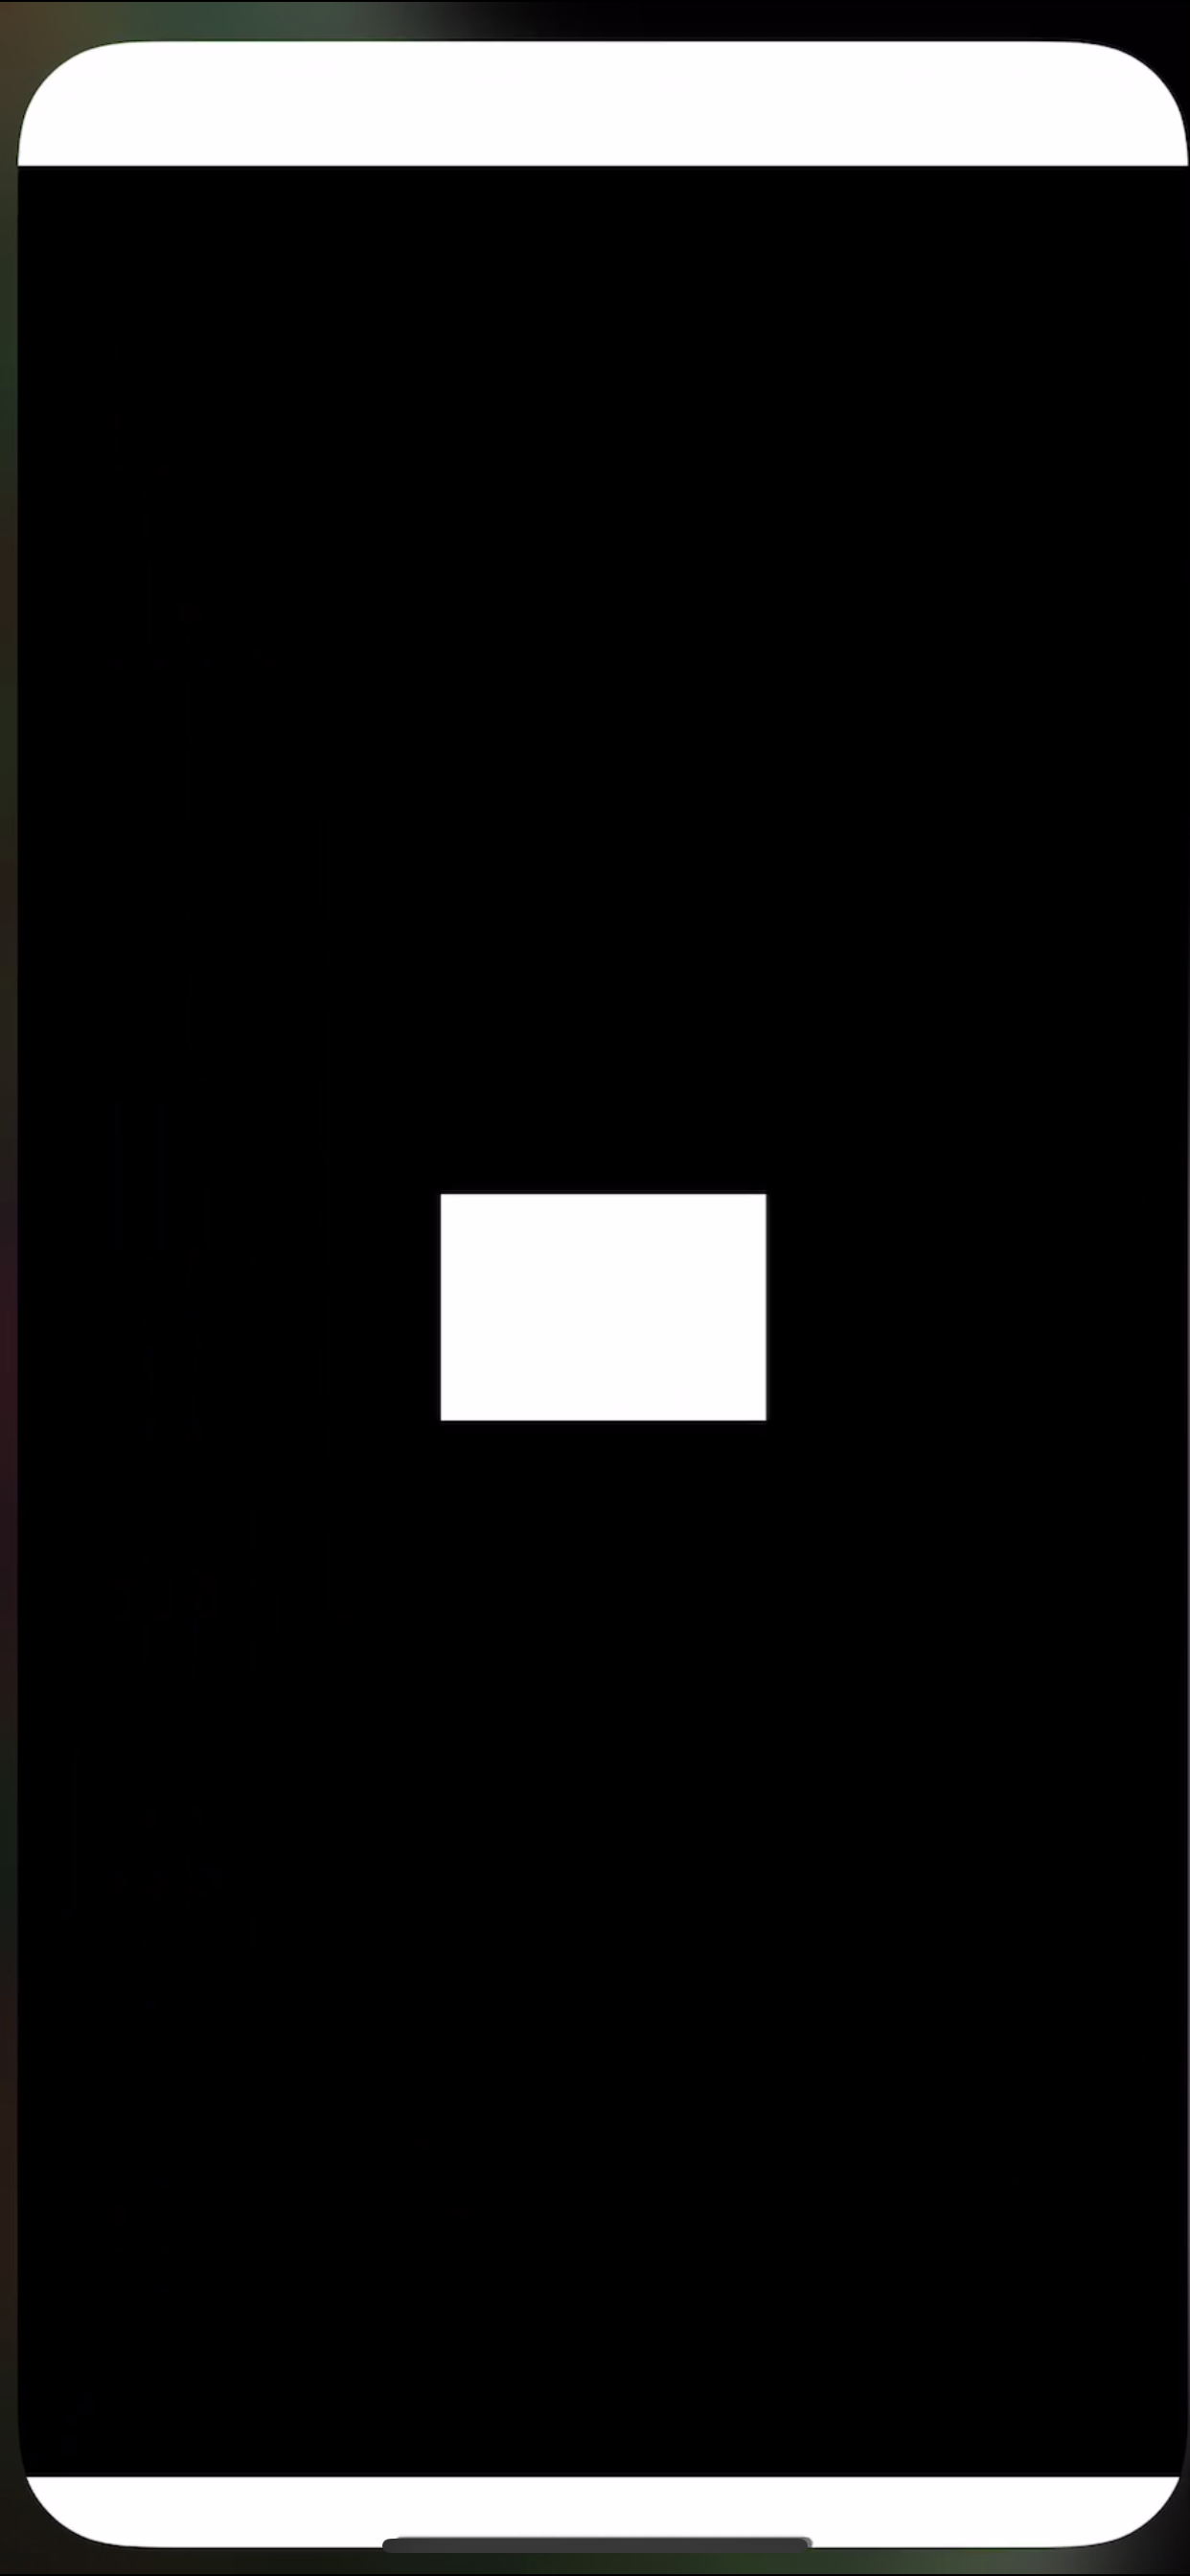 White box appears whenever opening Youtube app - YouTube Help